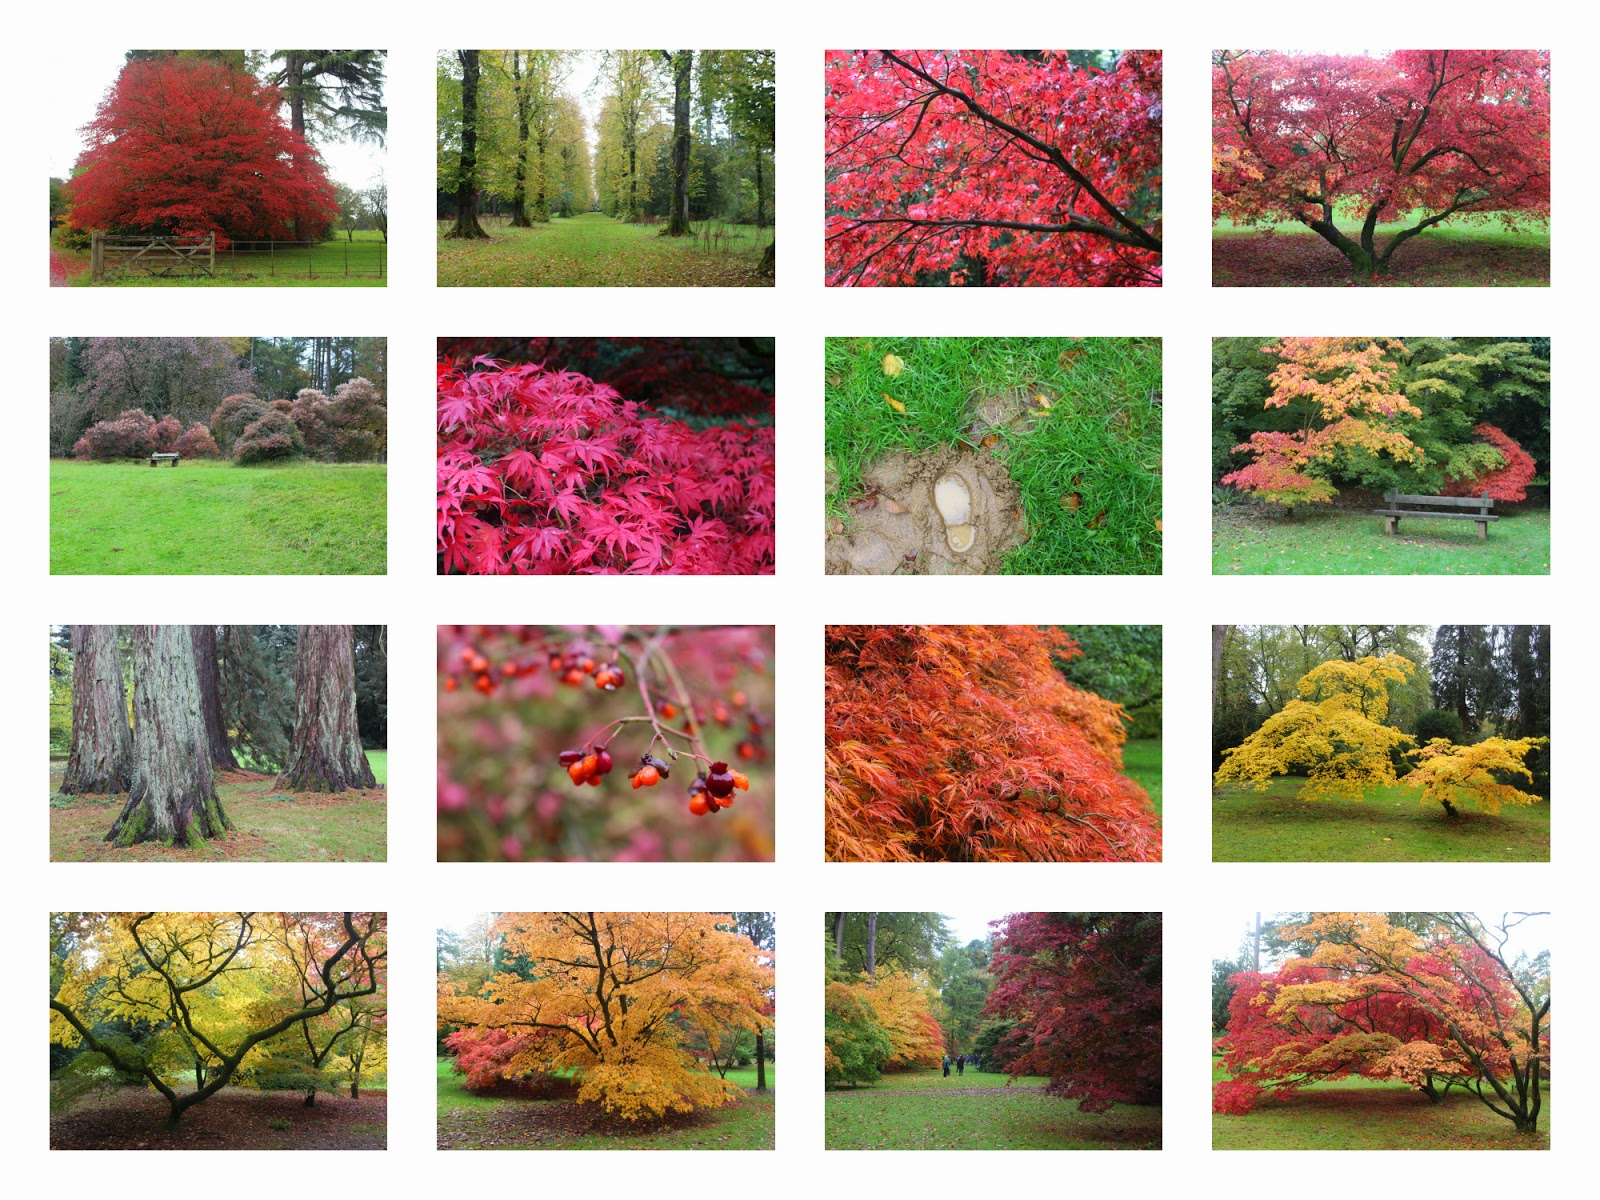 Photo collage of the trees at Westonbirt Arboretum showing off their autumn colours